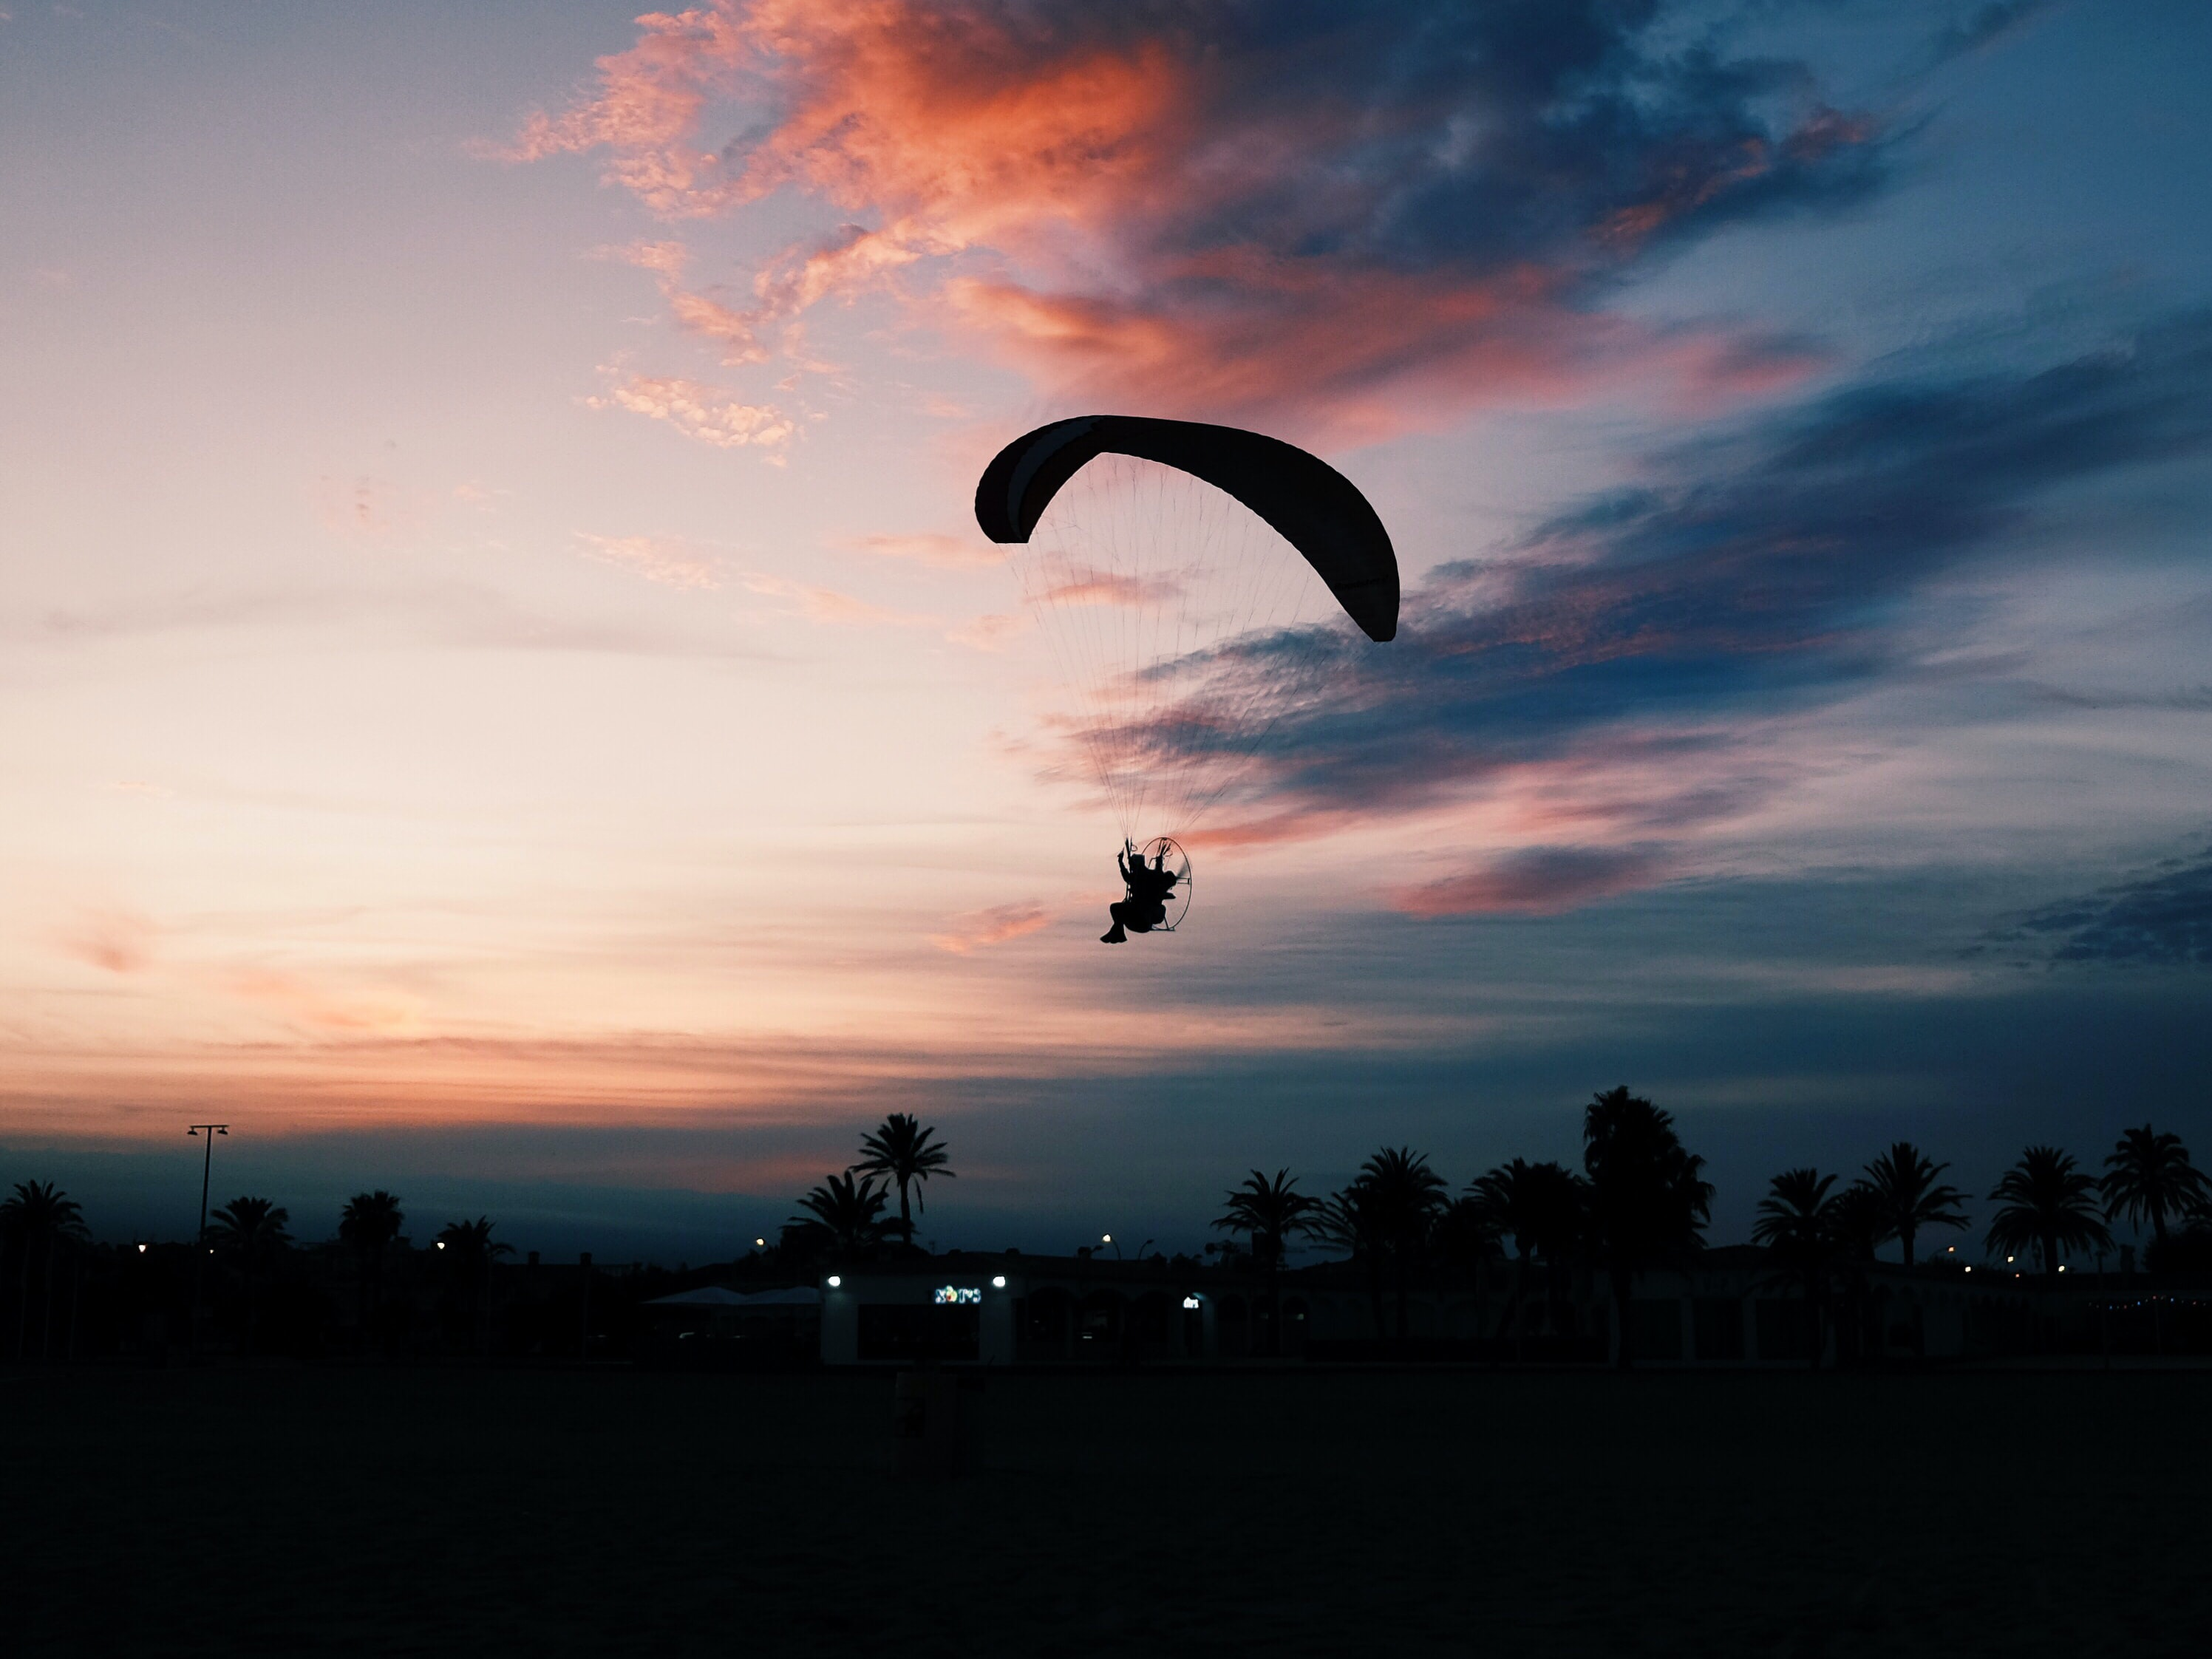 silhouette of man parachuting under gray sky